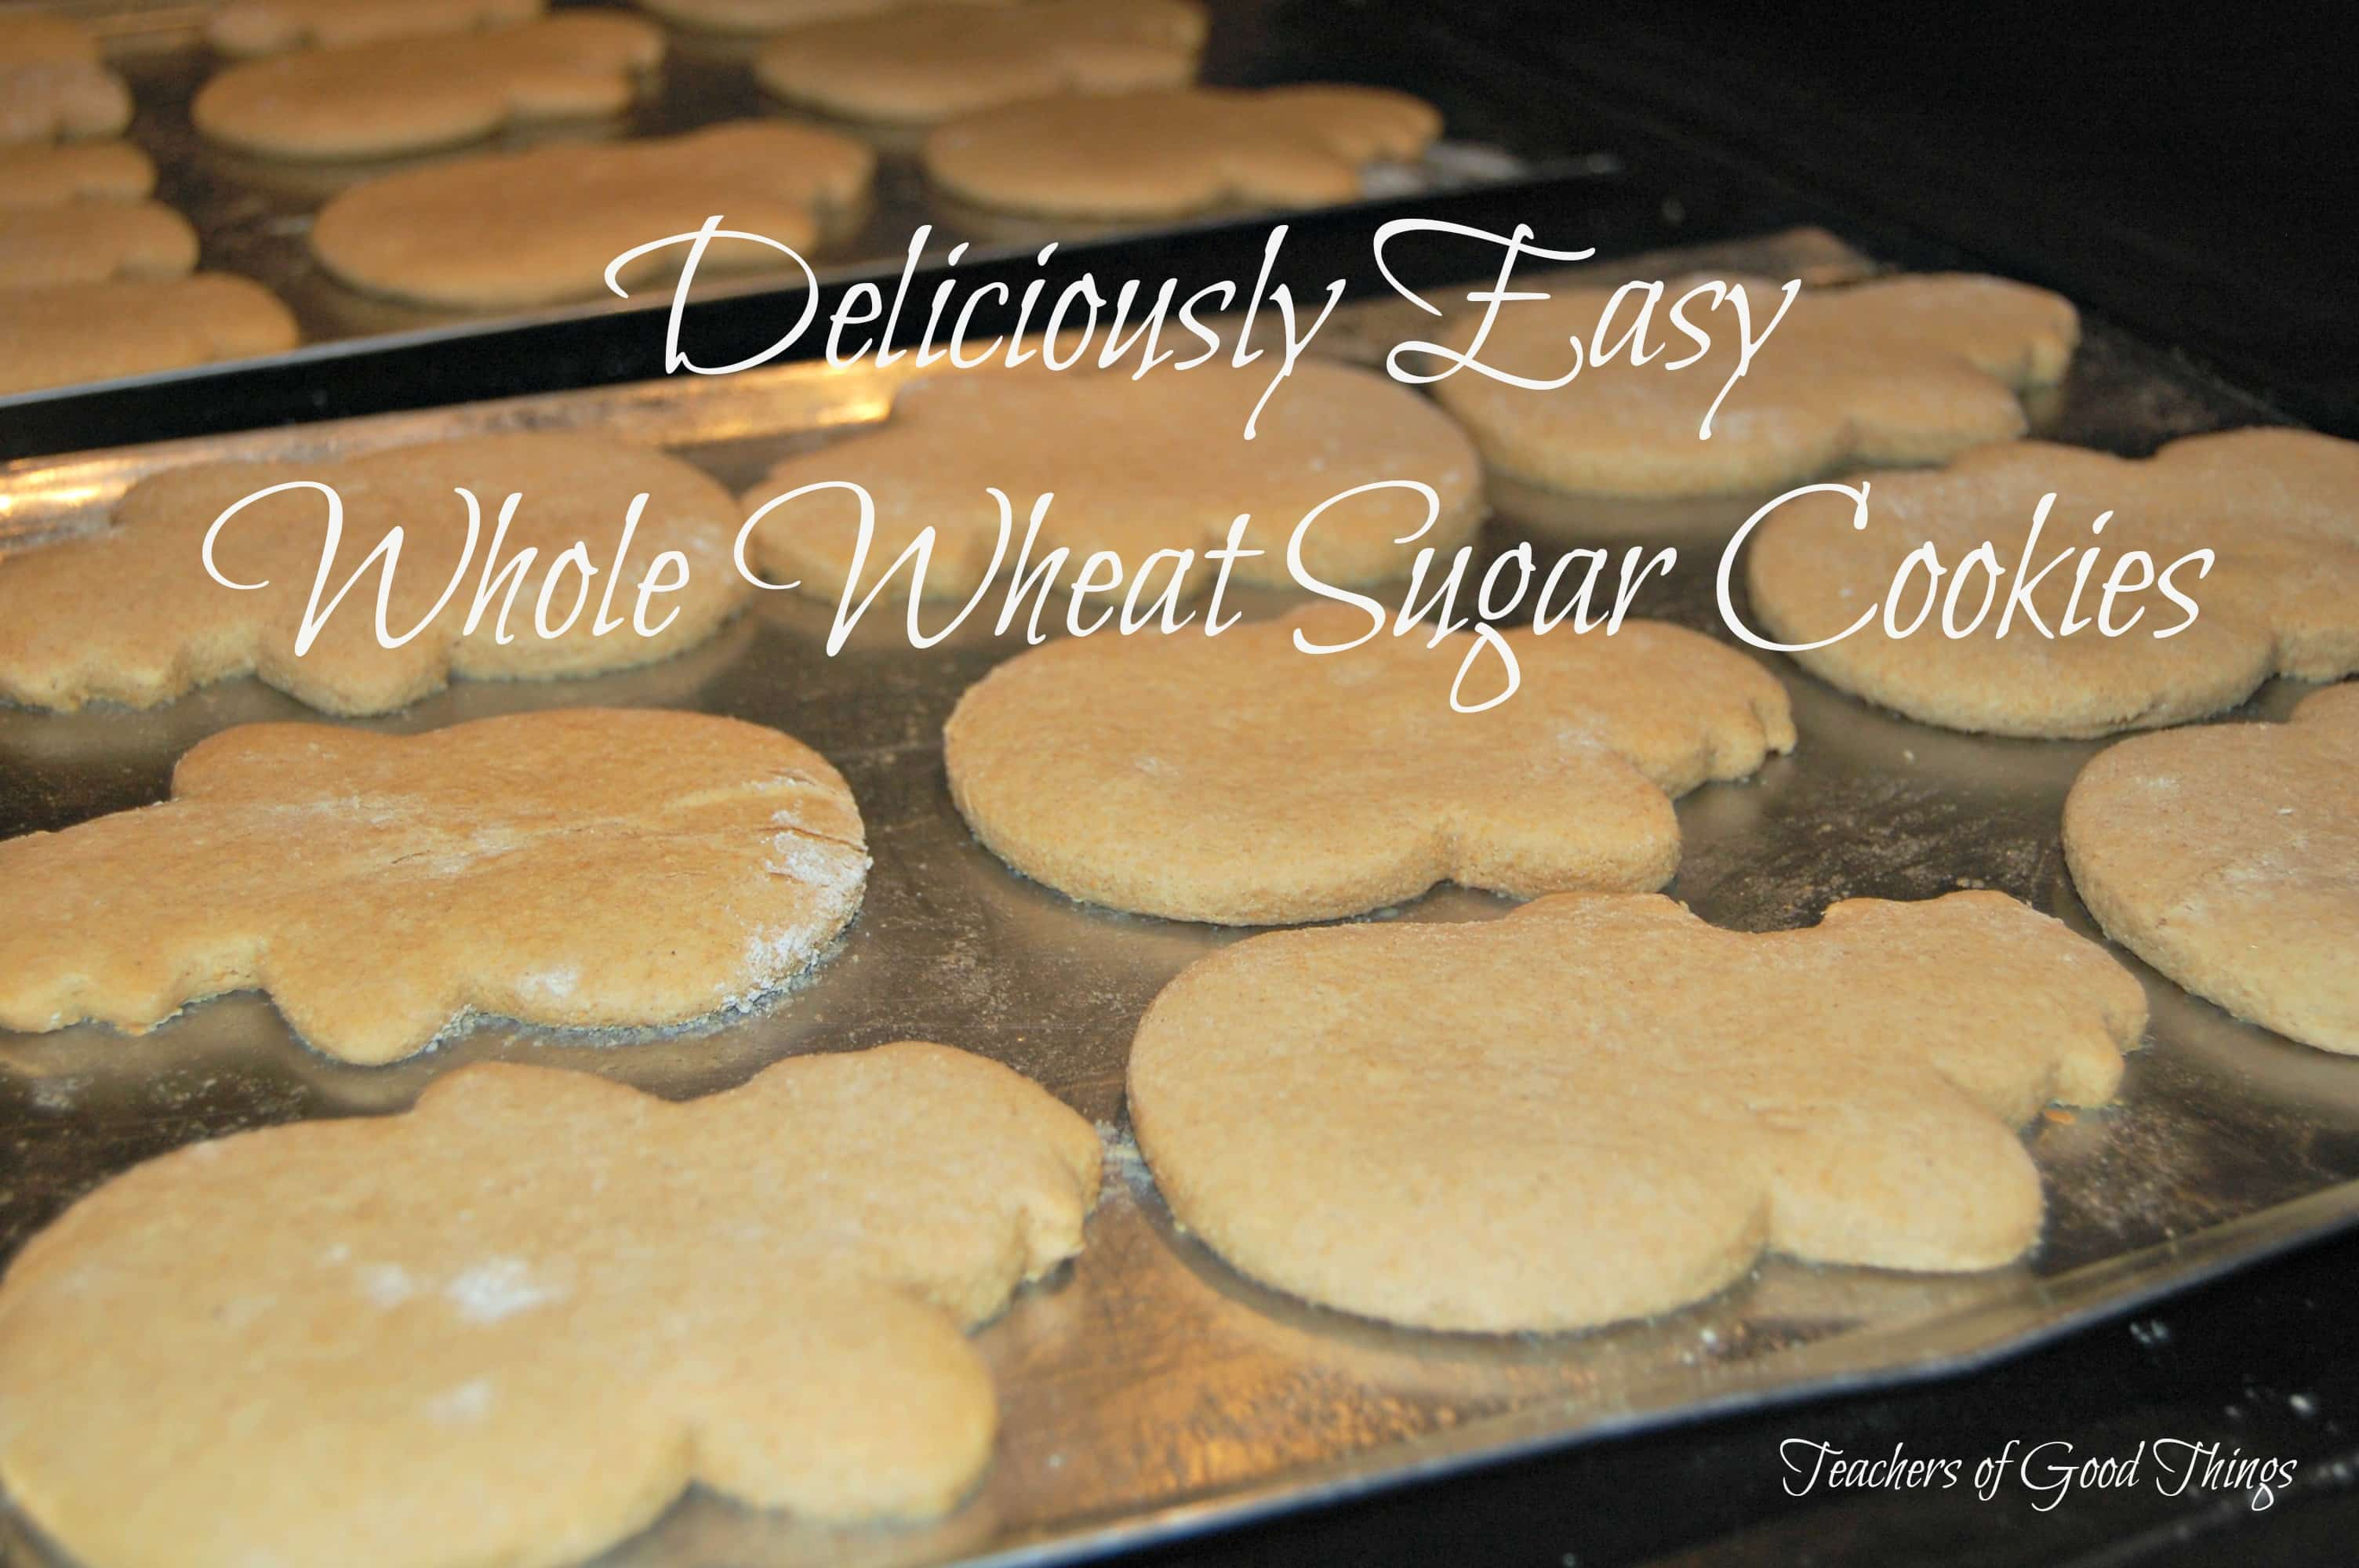 Deliciously Easy Whole Wheat Sugar Cookies www.teachersofgoodthings.com